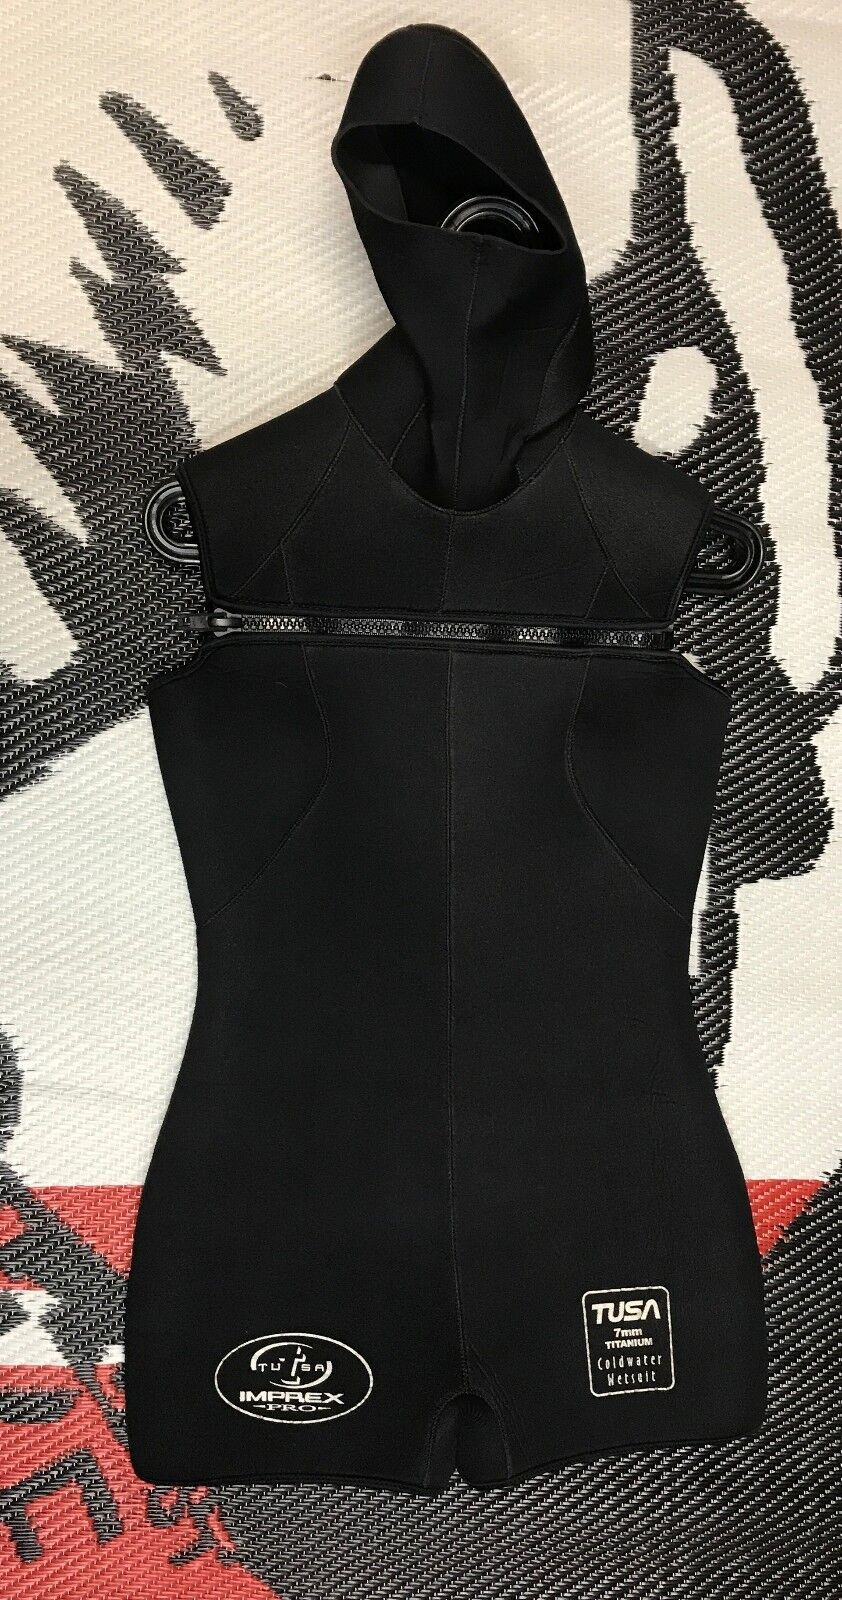 USED Women's Tusa  7mm Hooded Shorty Titanium Wetsuit  hottest new styles